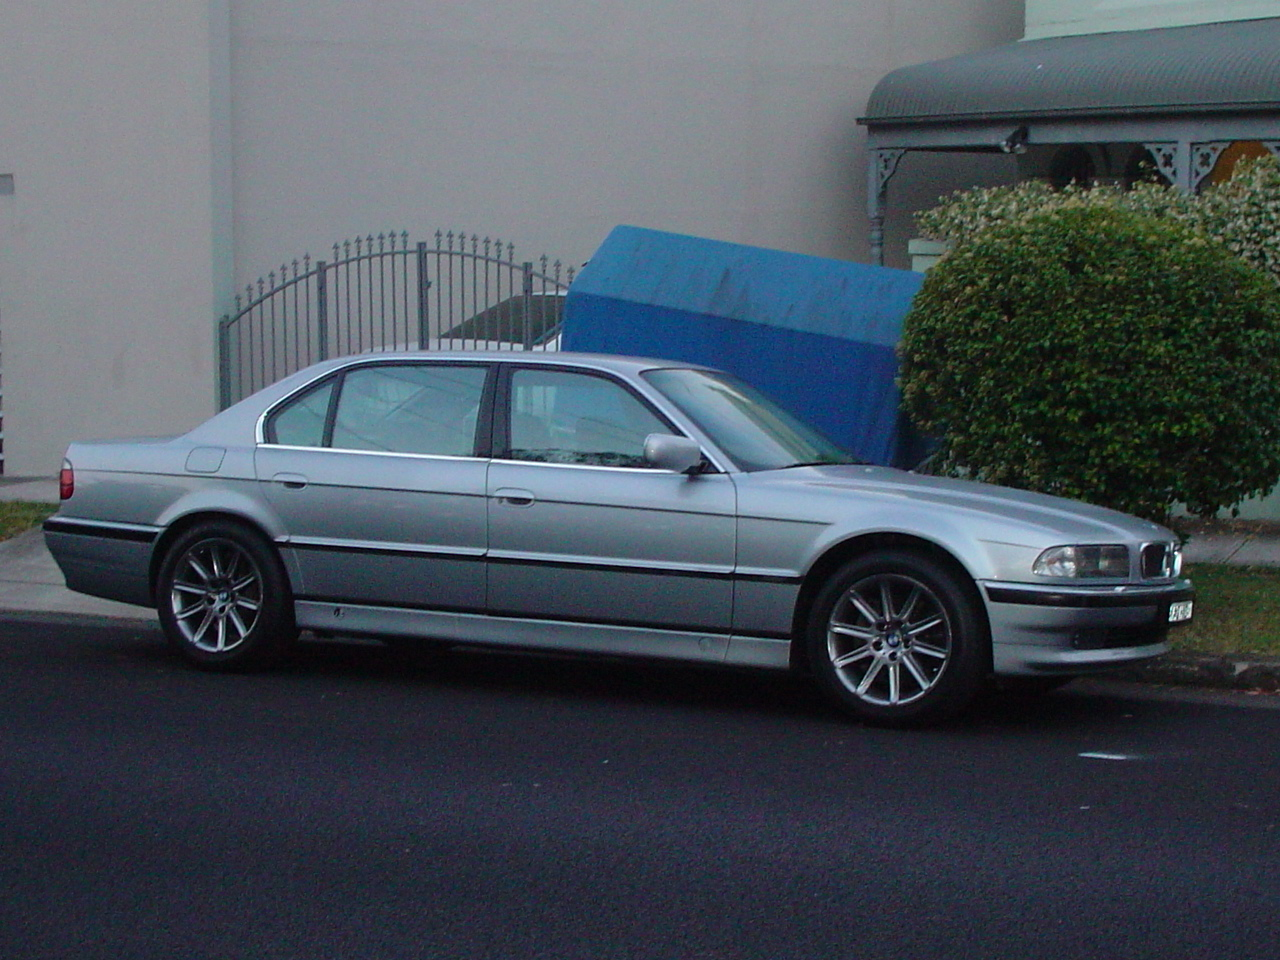 BMW 7 series 750iL 1996 photo - 1